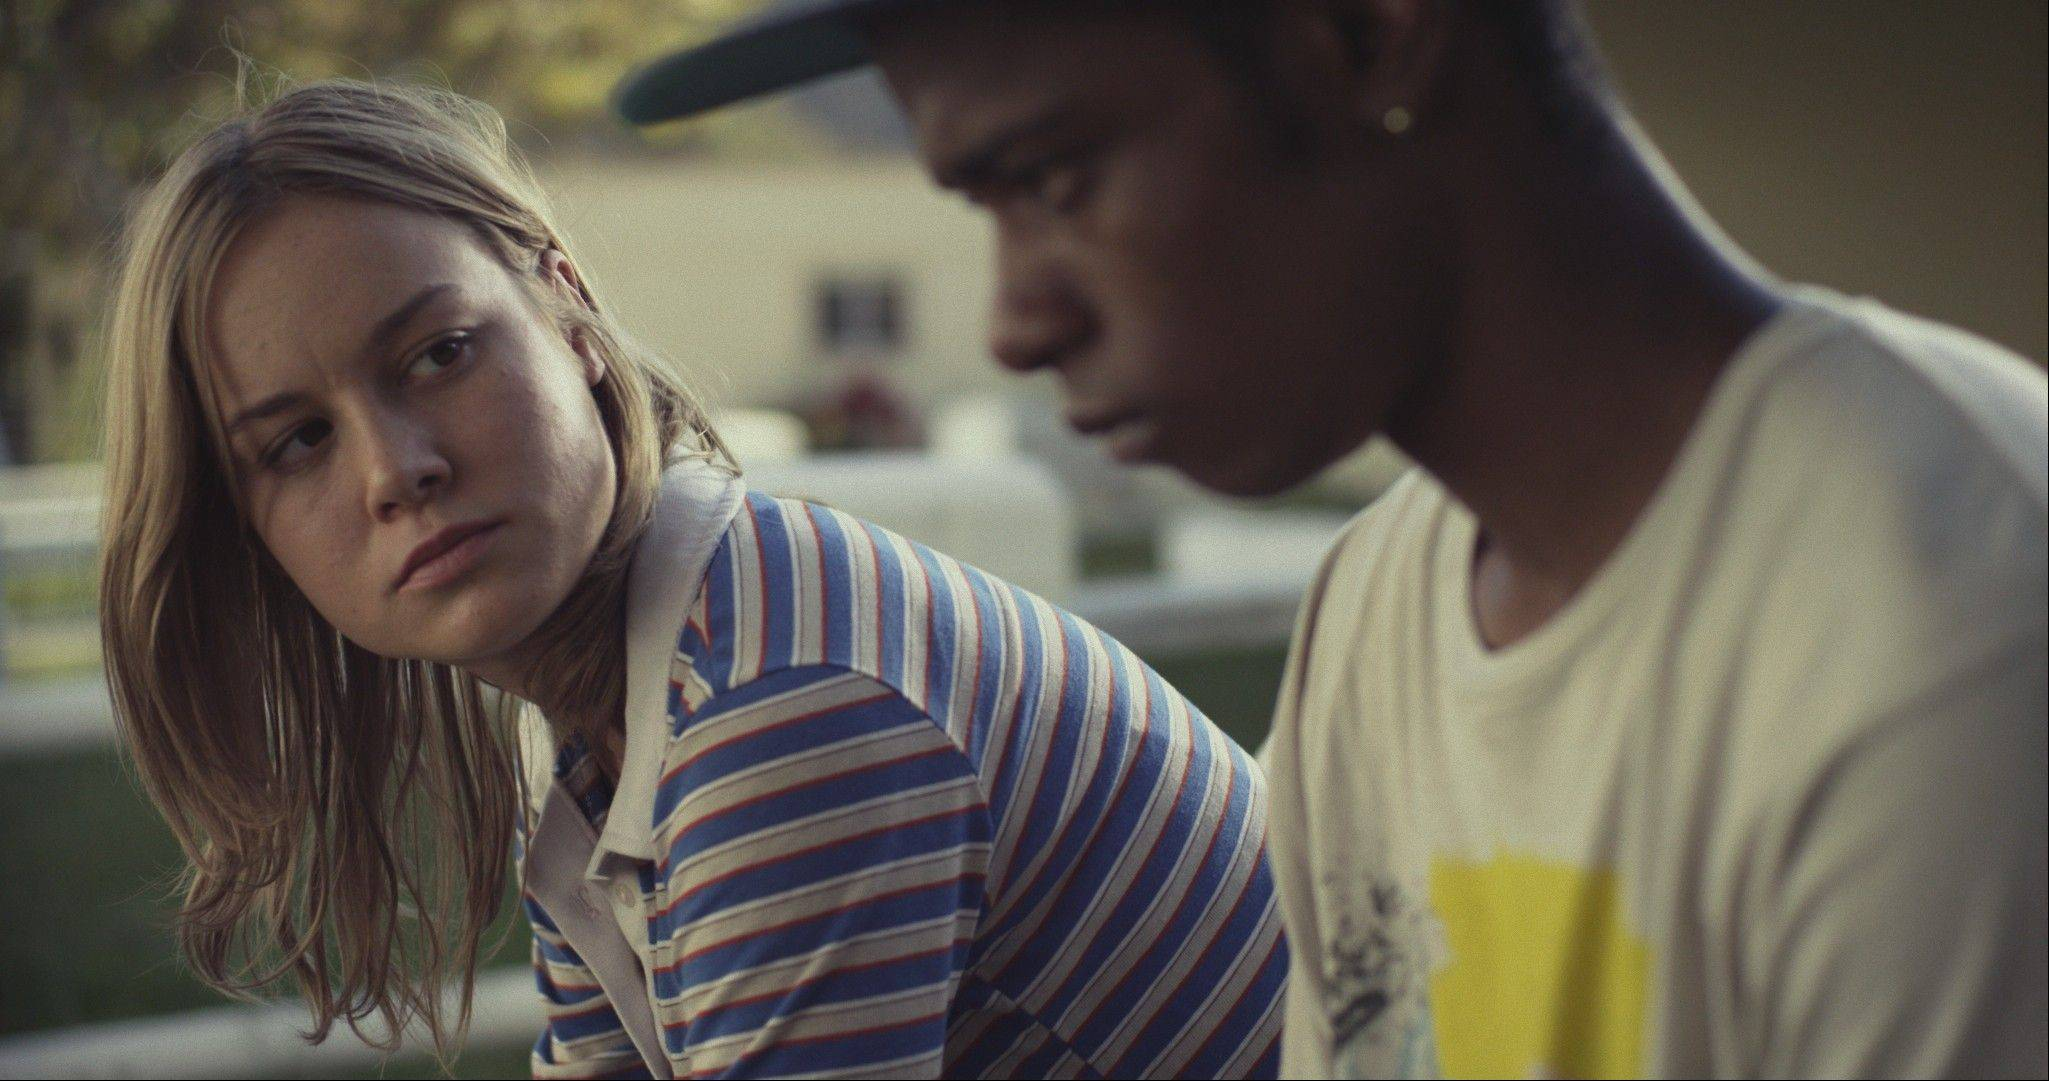 Grace (Brie Larson) listens to troubled teen in the terrific drama